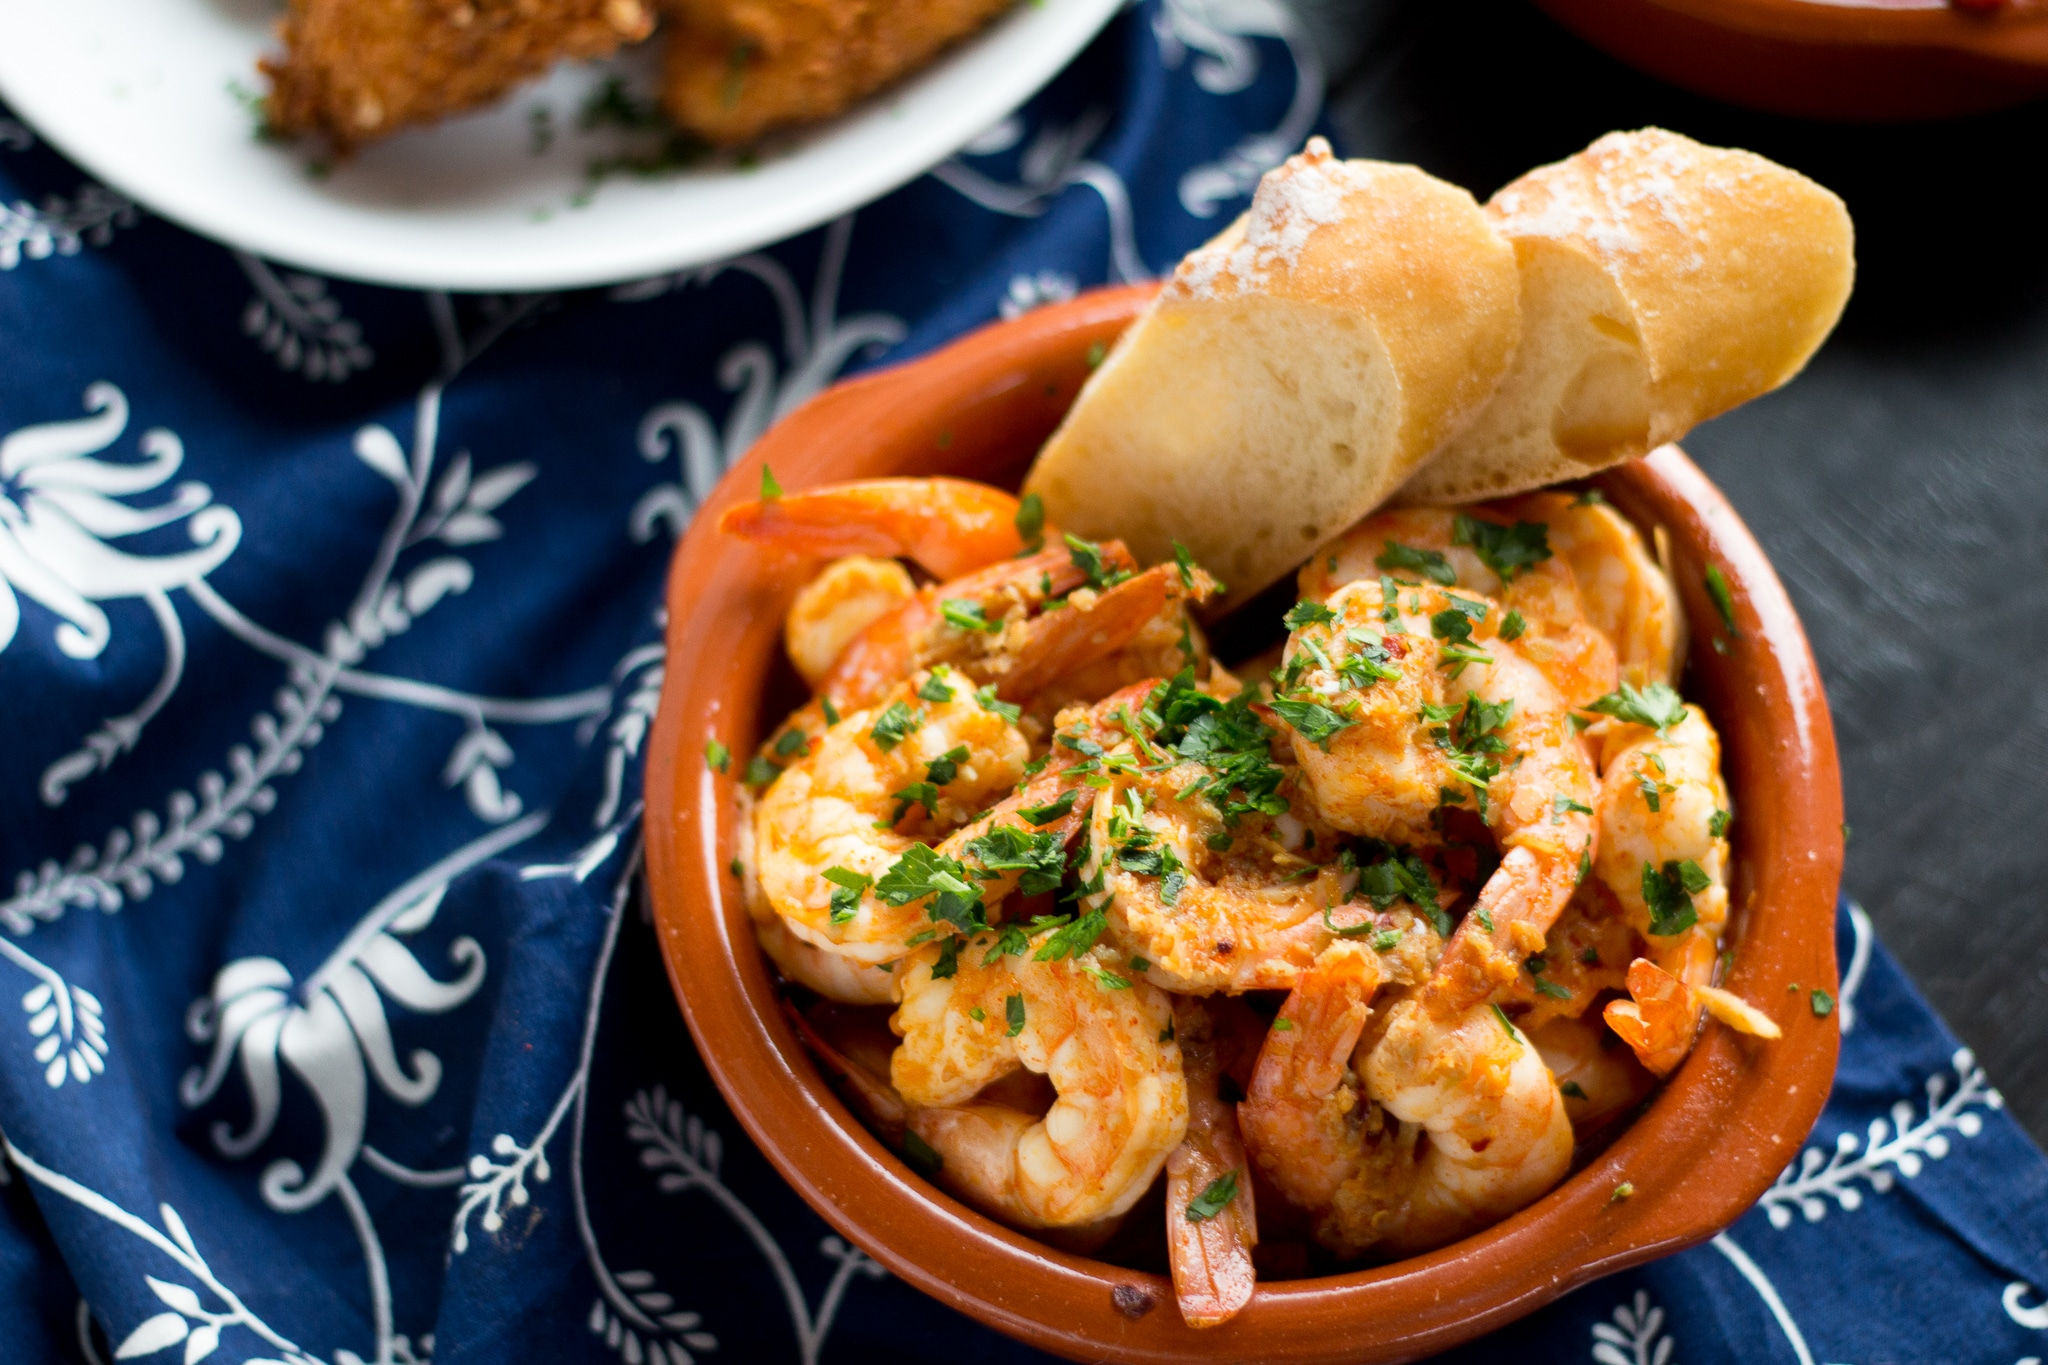 Garlic Shrimp (Gambas al Ajillo) are a classic Spanish tapas dish. Succulent shrimp in a spicy garlicky sauce that you will need to dip your bread into!